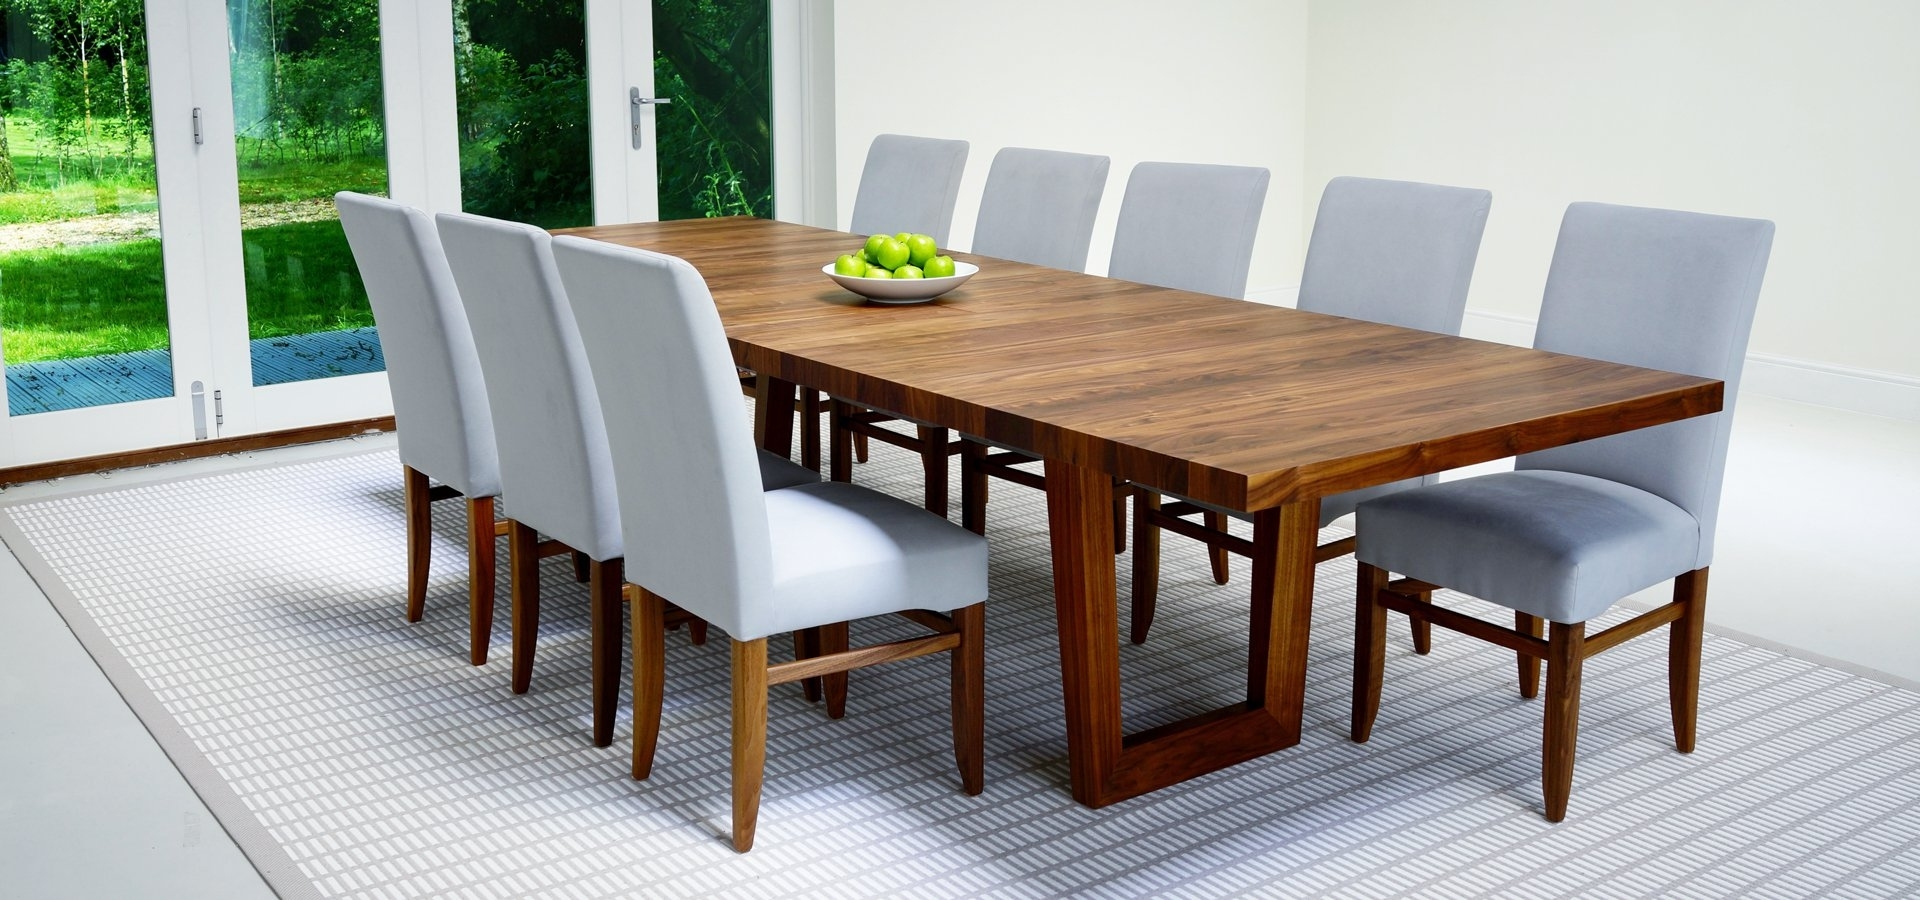 Extended Dining Tables And Chairs for 2017 Contemporary Dining Tables & Furnitureberrydesign. Bespoke /custom